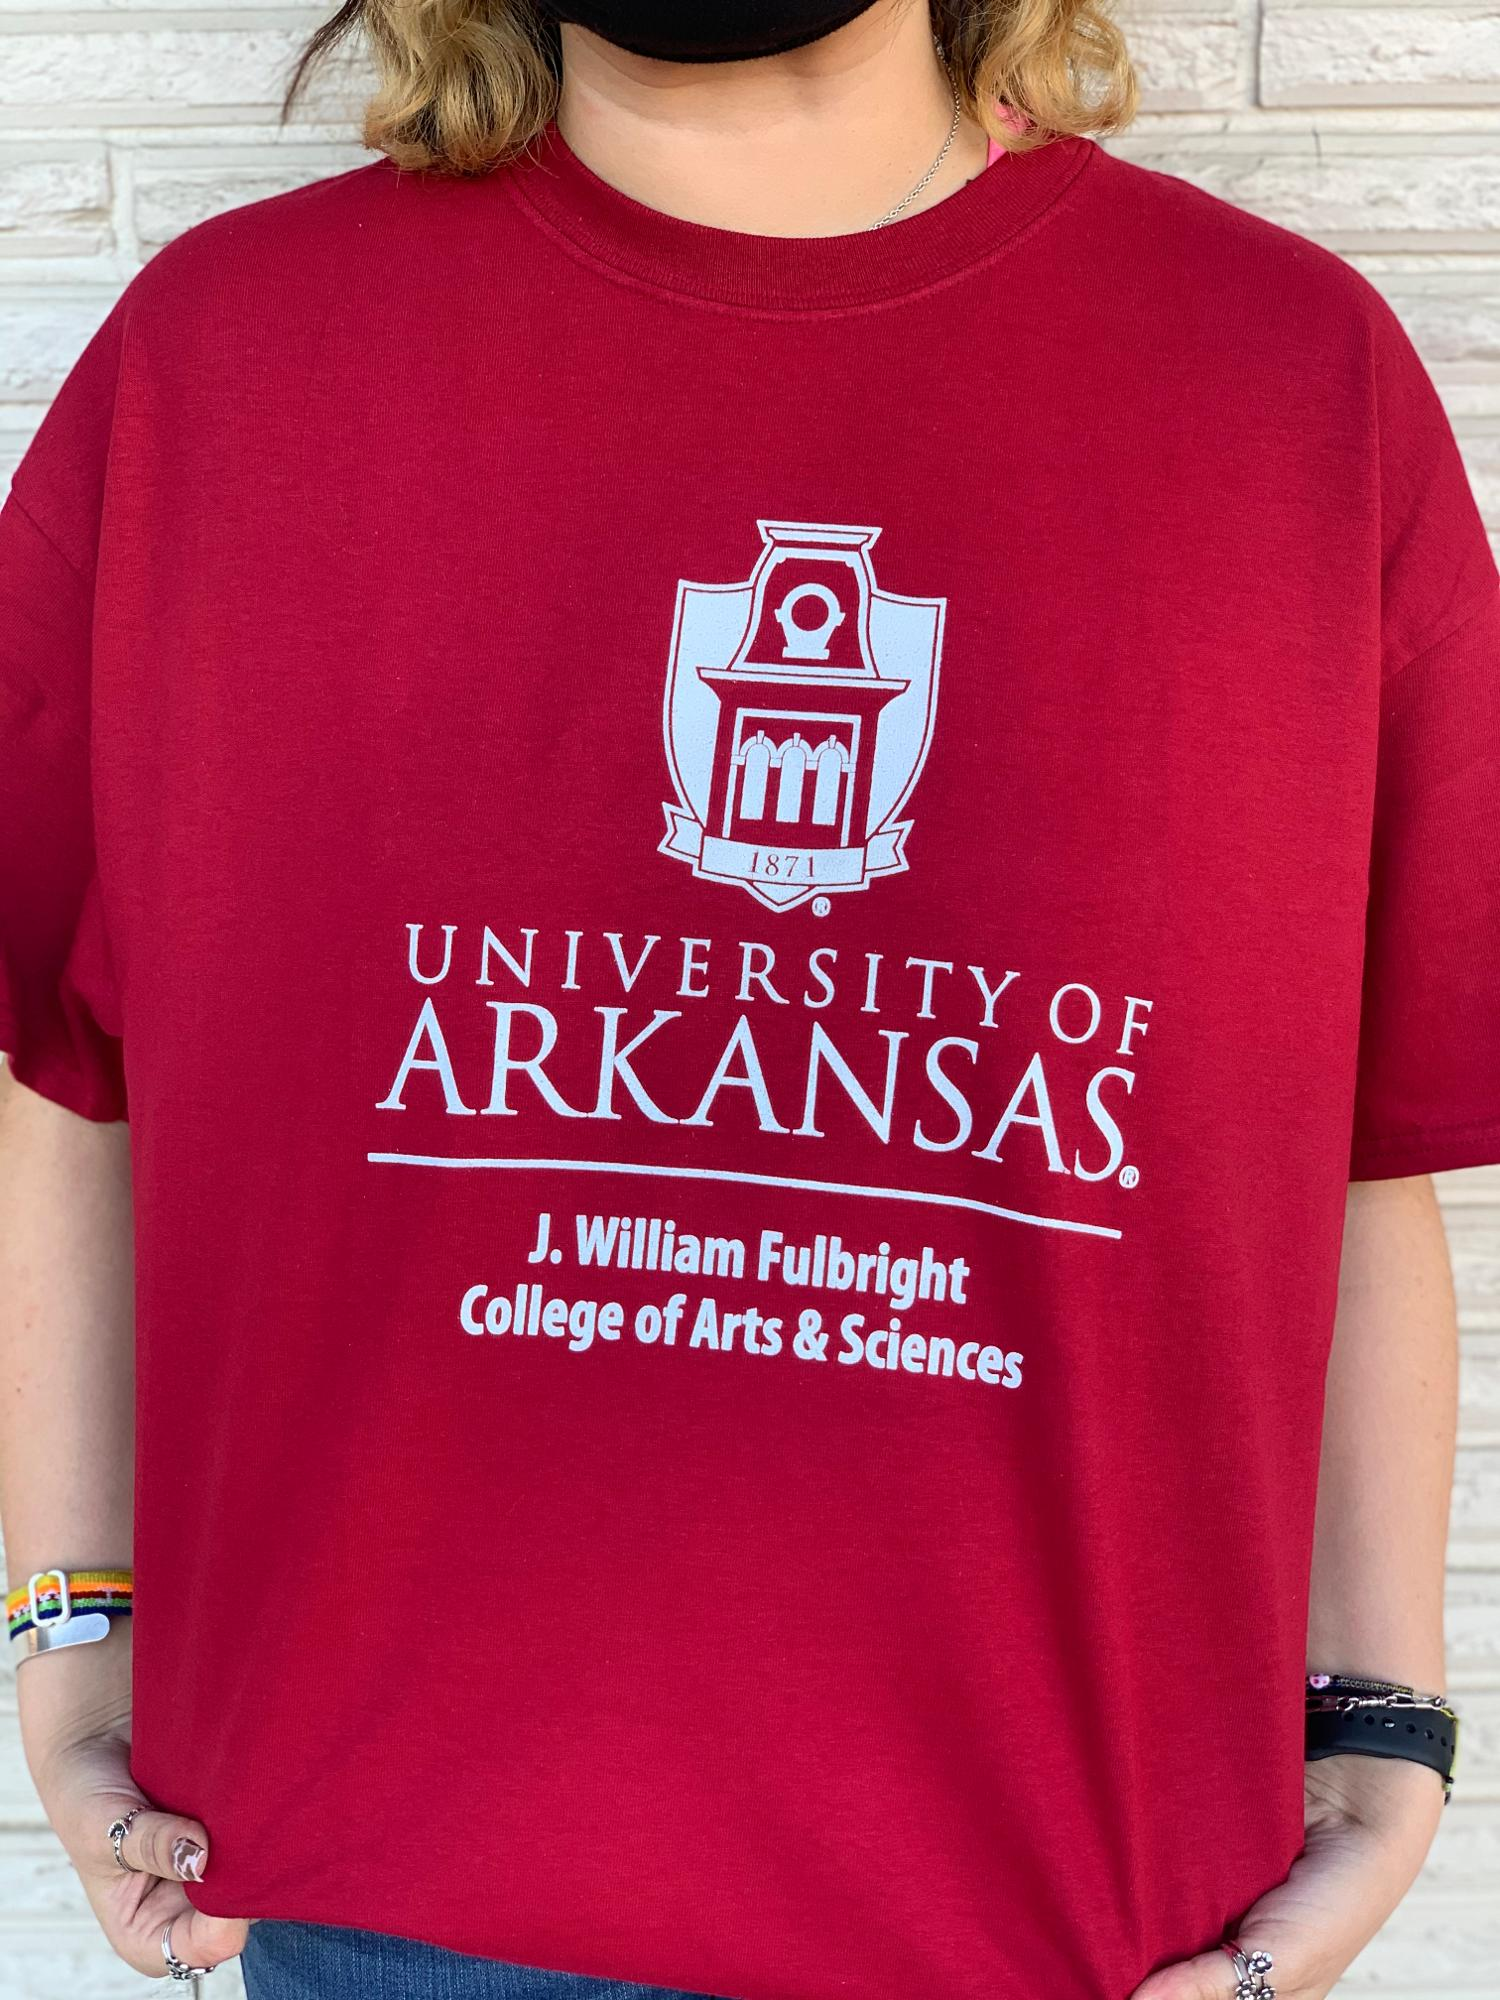 image of: University of Arkansas Fulbright College Tower Tee